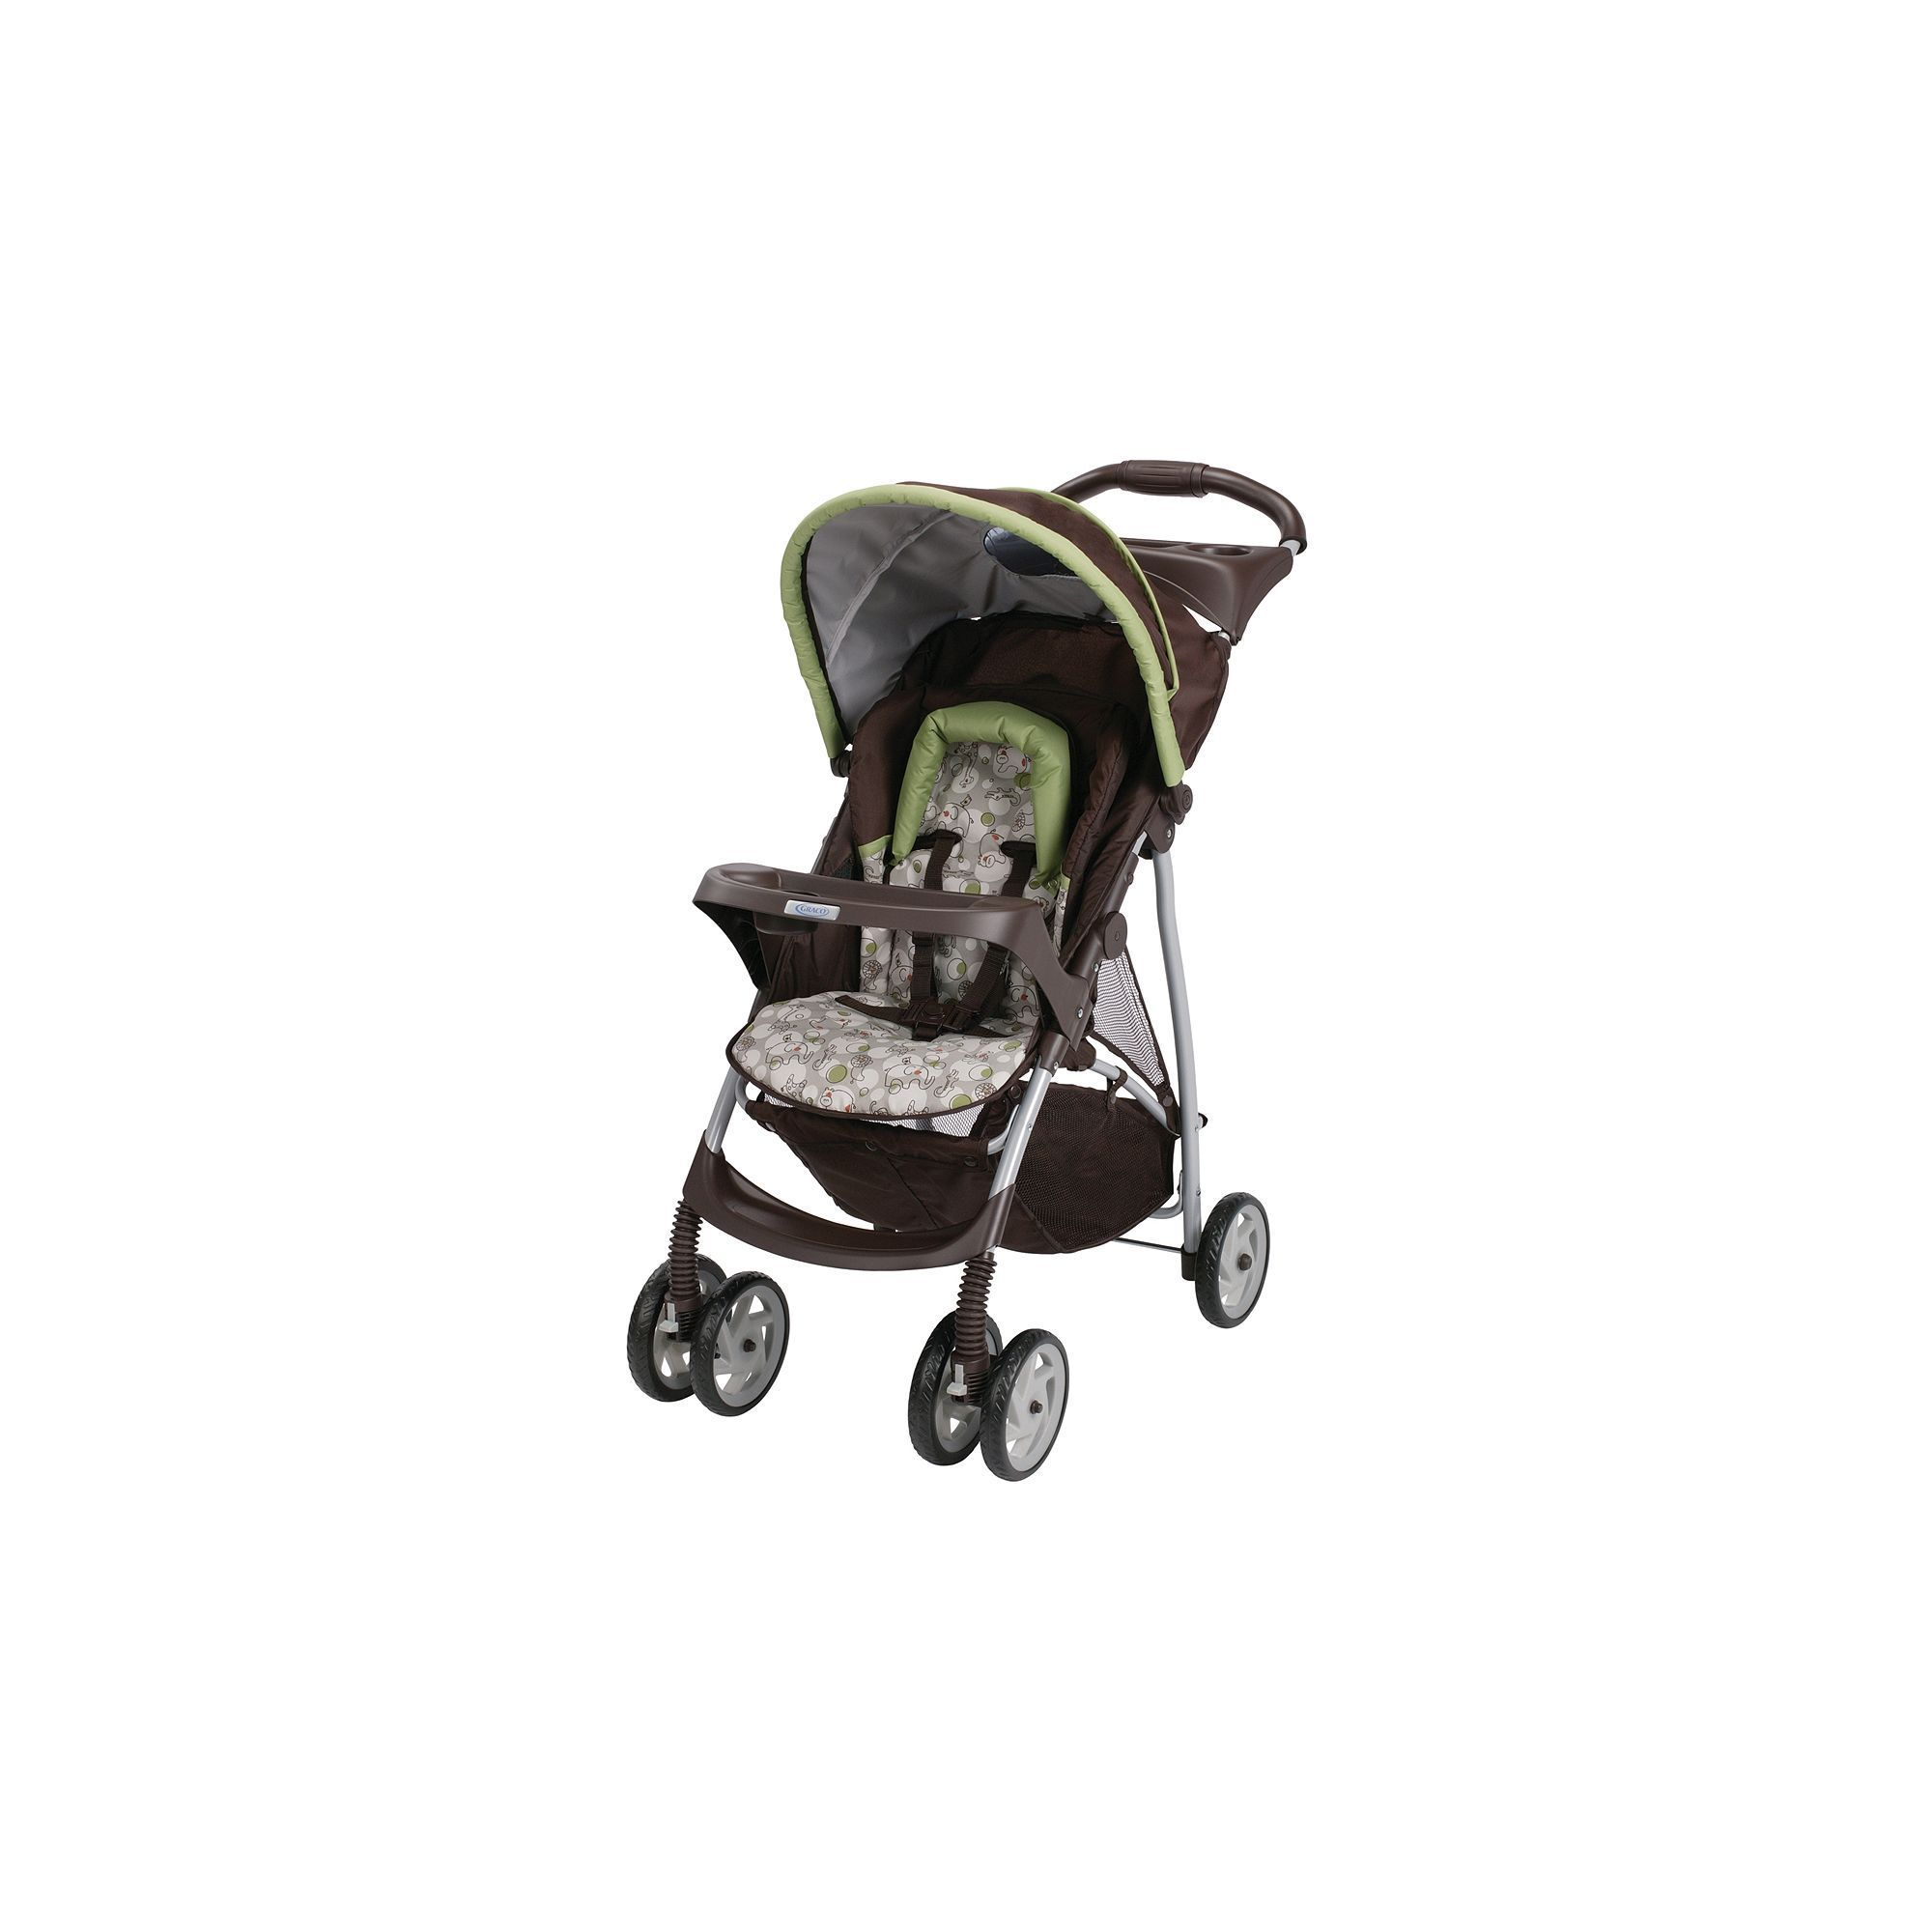 Graco Literider Click Connect Stroller Baby strollers